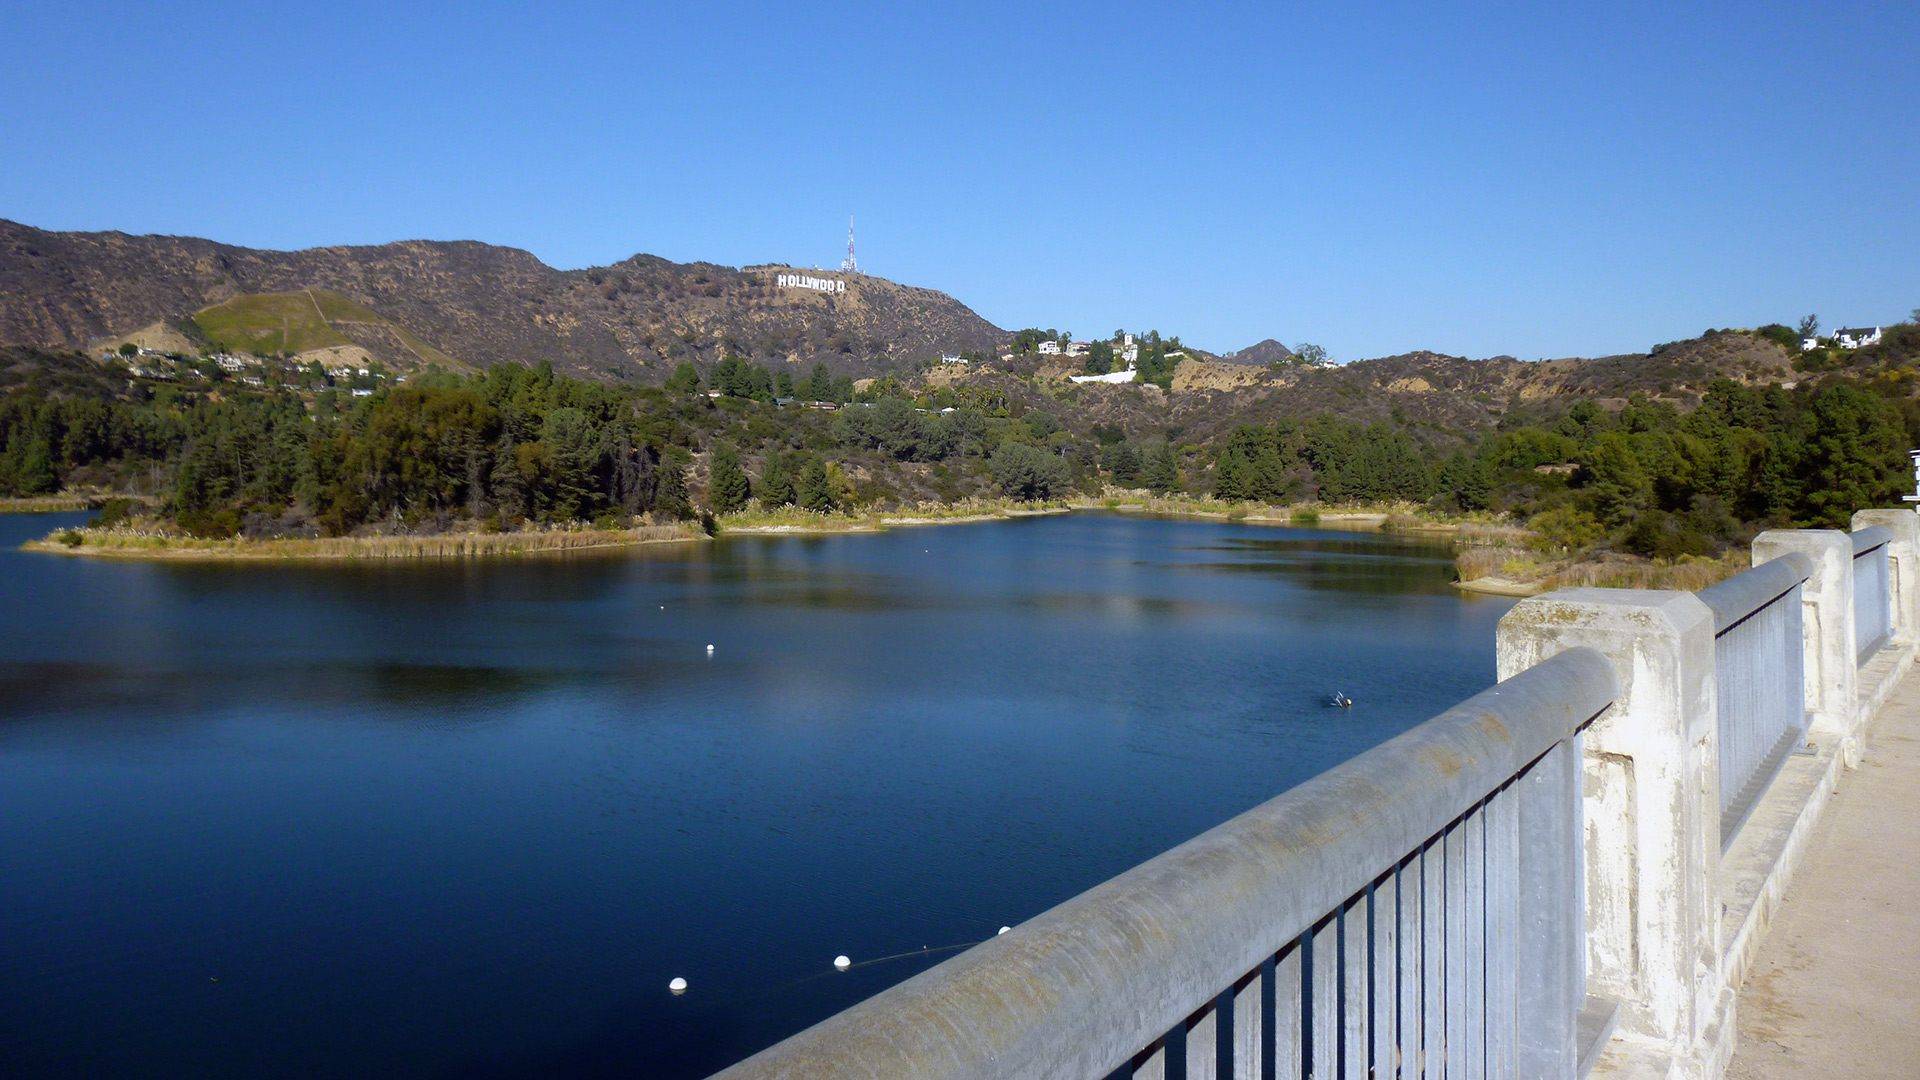 Mulholland Dam at the Hollywood Reservoir